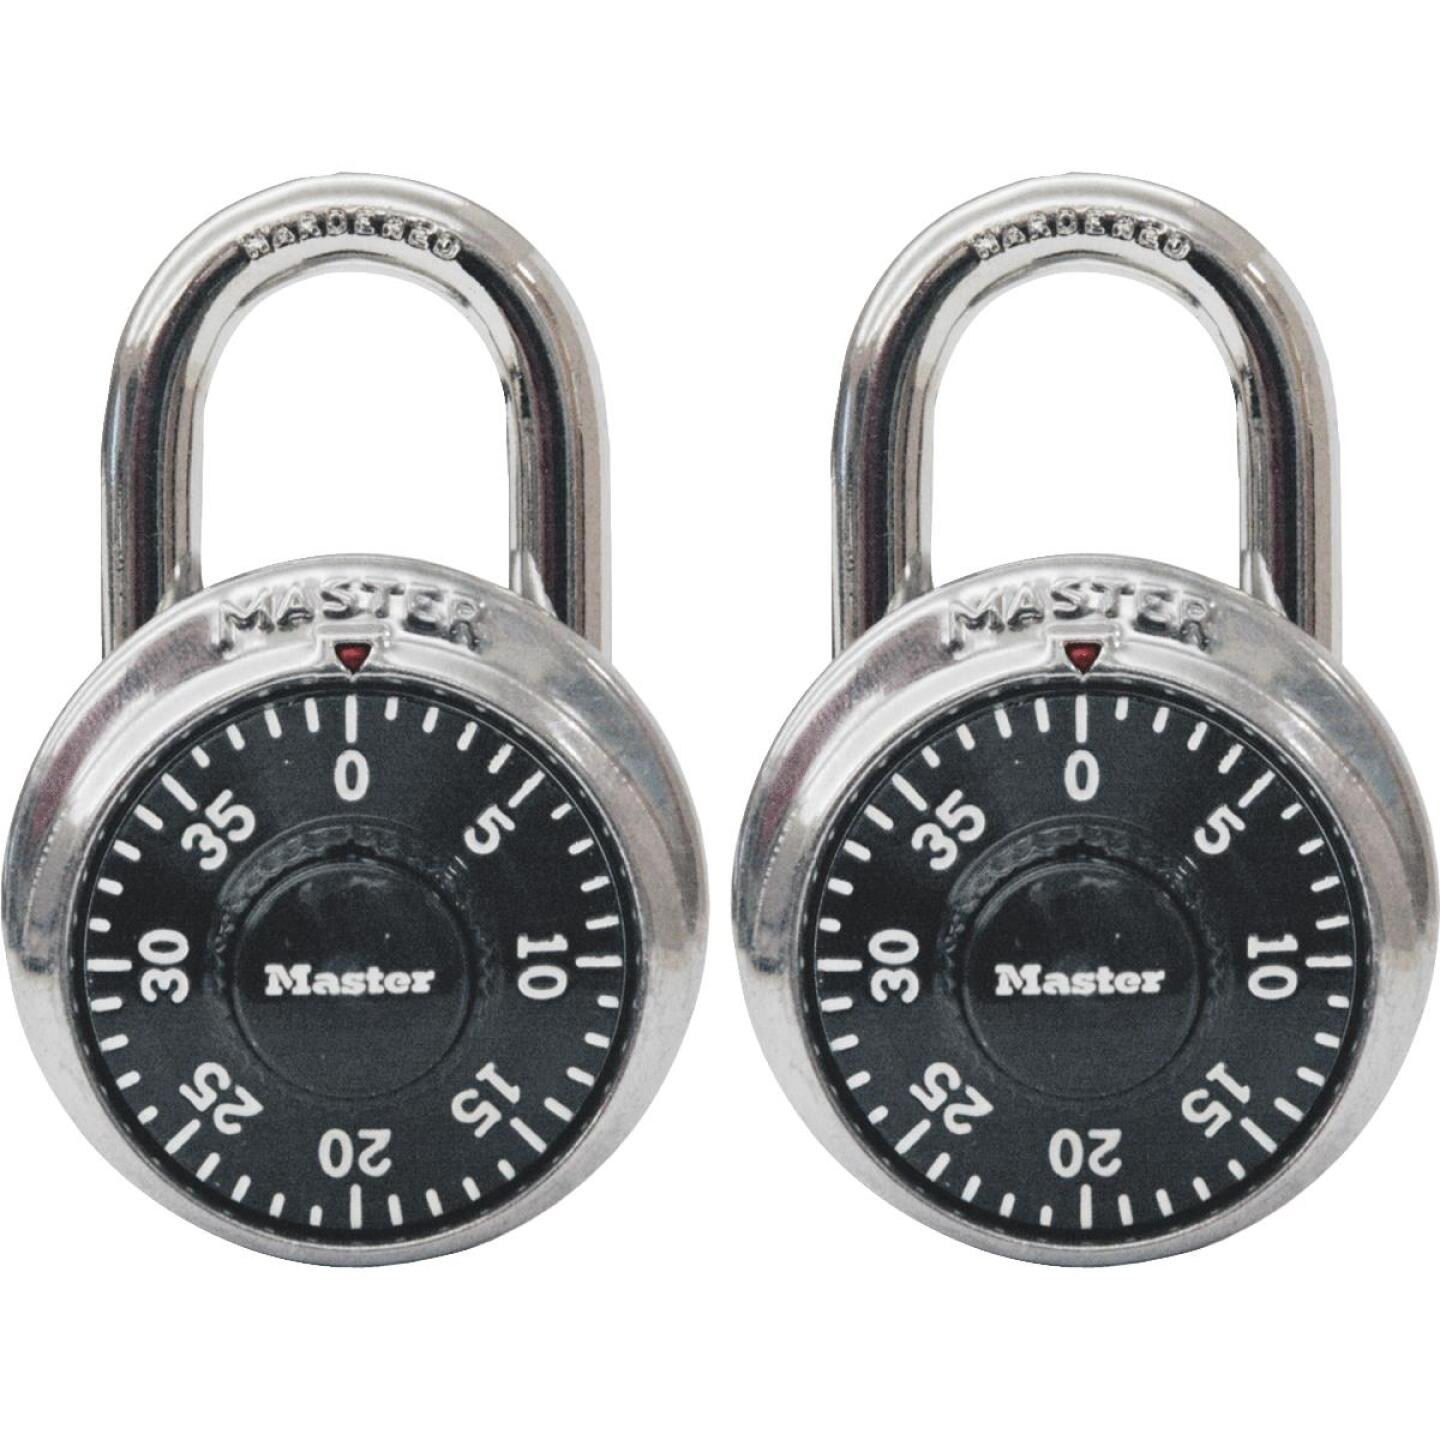 Master Lock 1-7/8 In. Stainless Steel Combination Padlock (2-Pack) Image 1